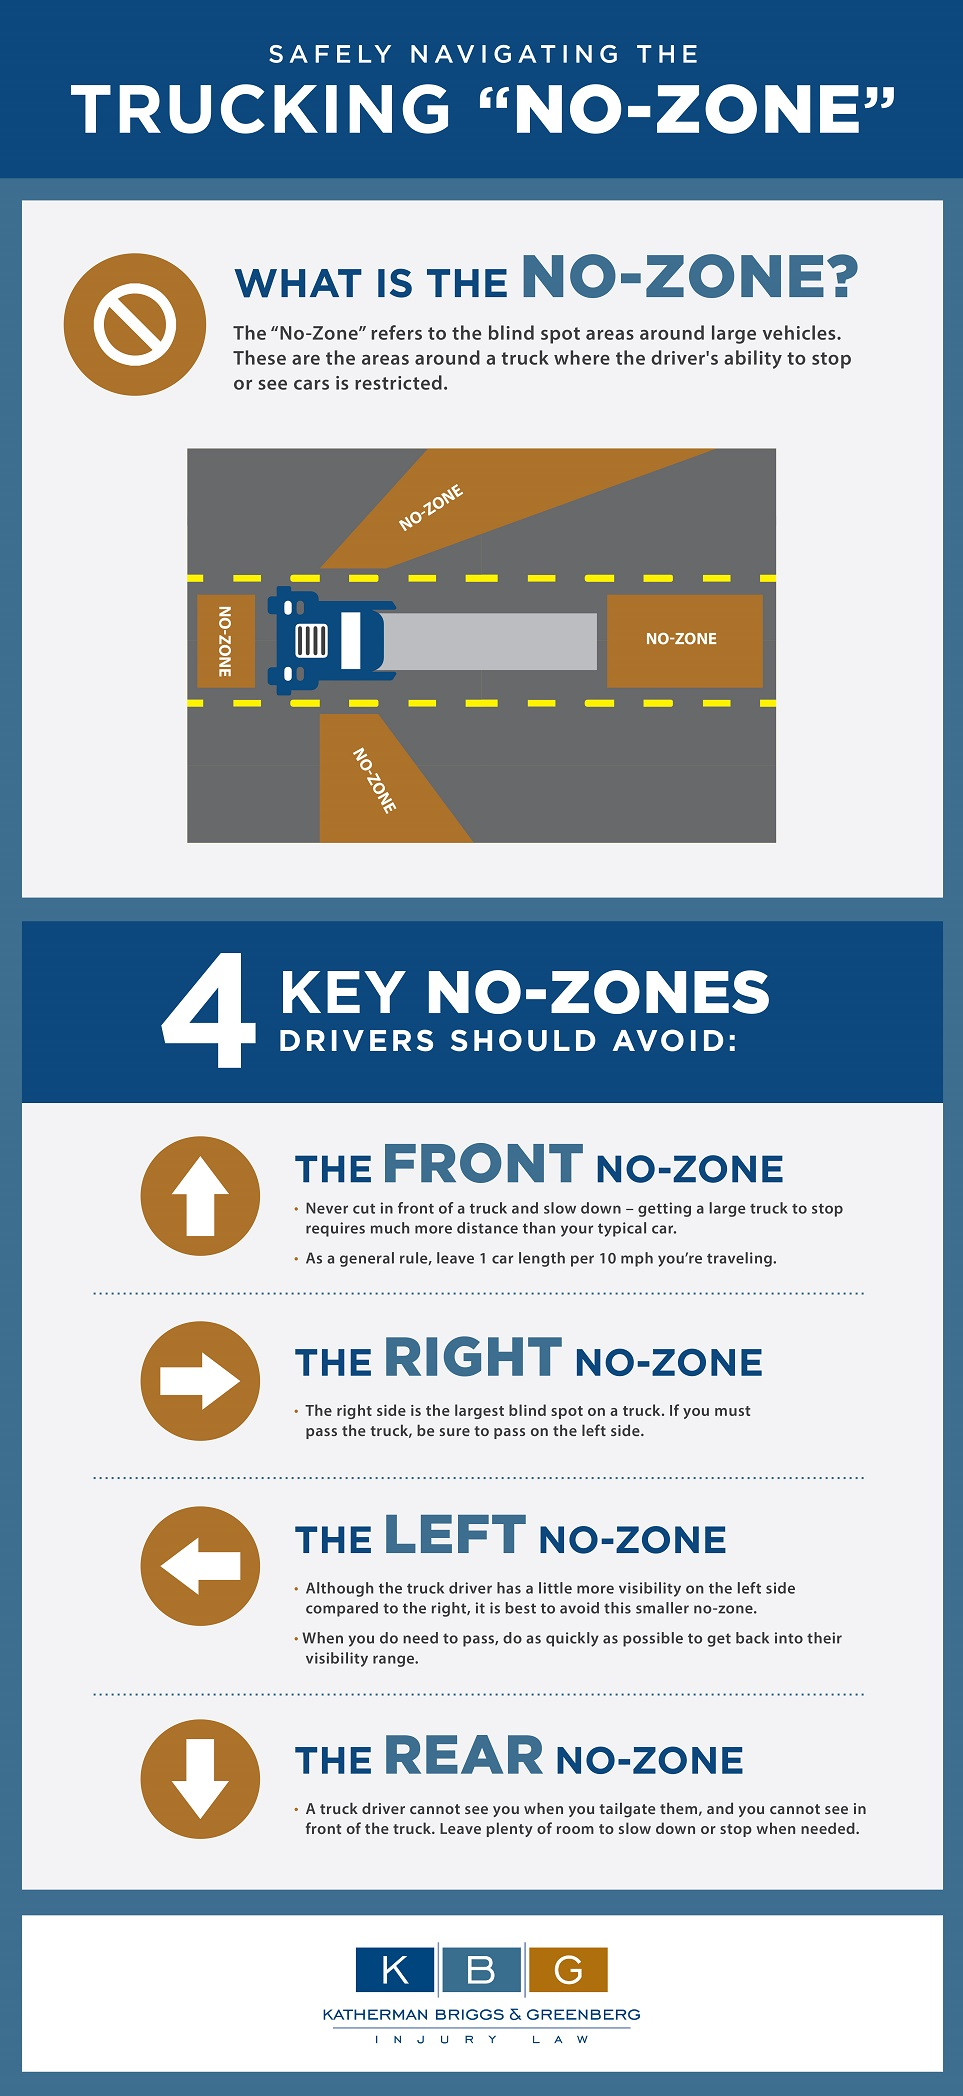 "Safely Navigating the Trucking ""No-Zone"""